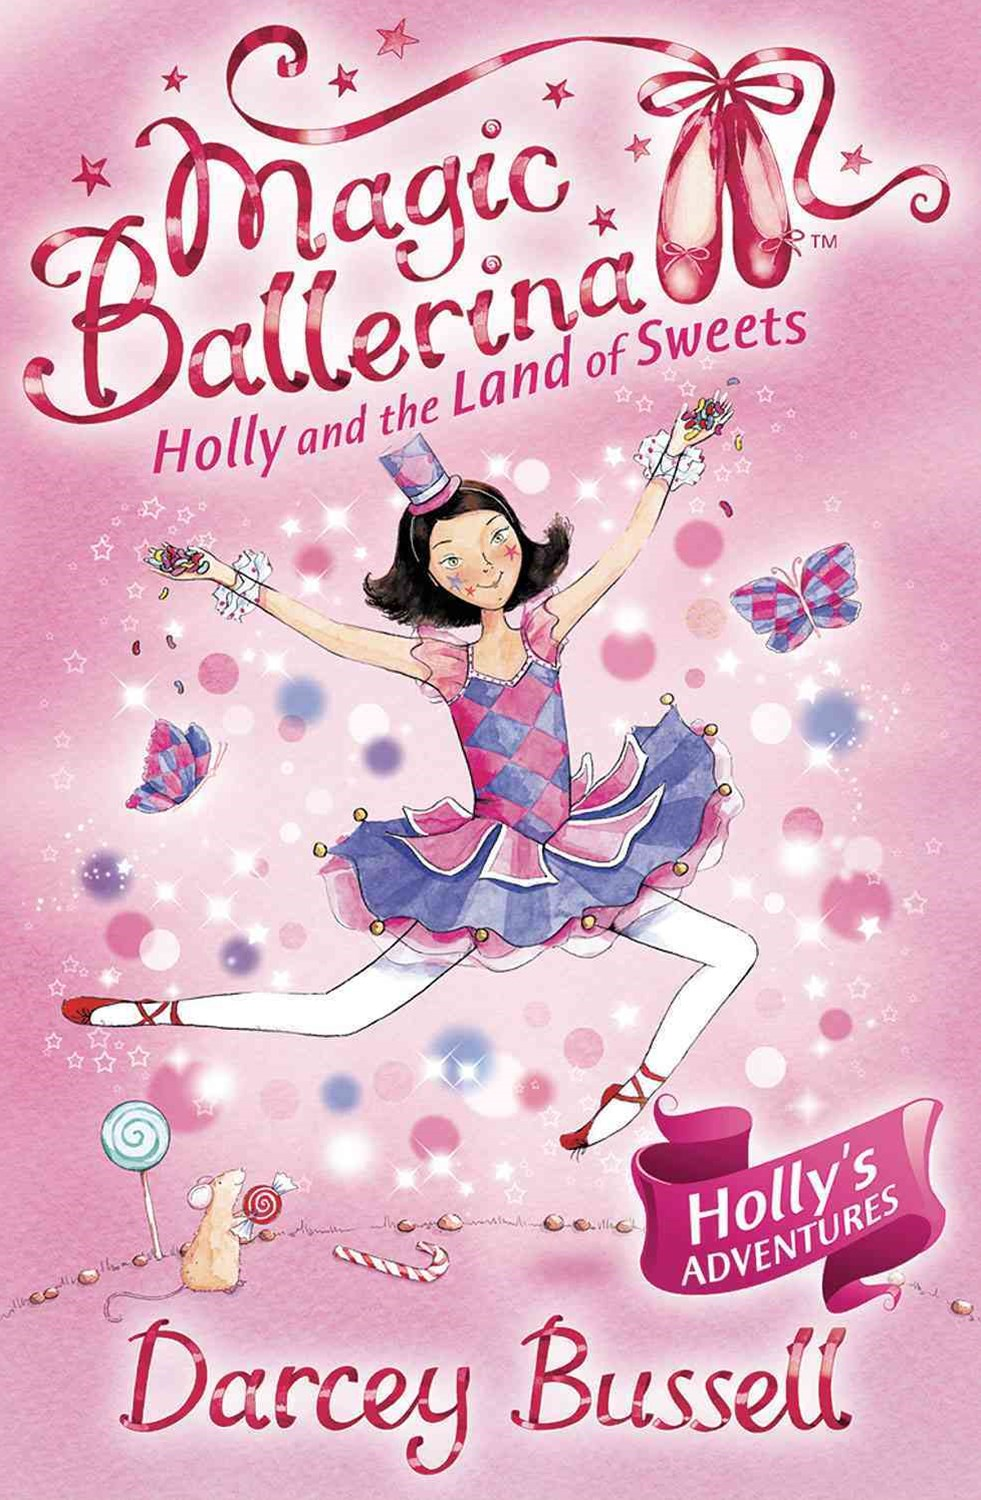 Holly and the Land of Sweets